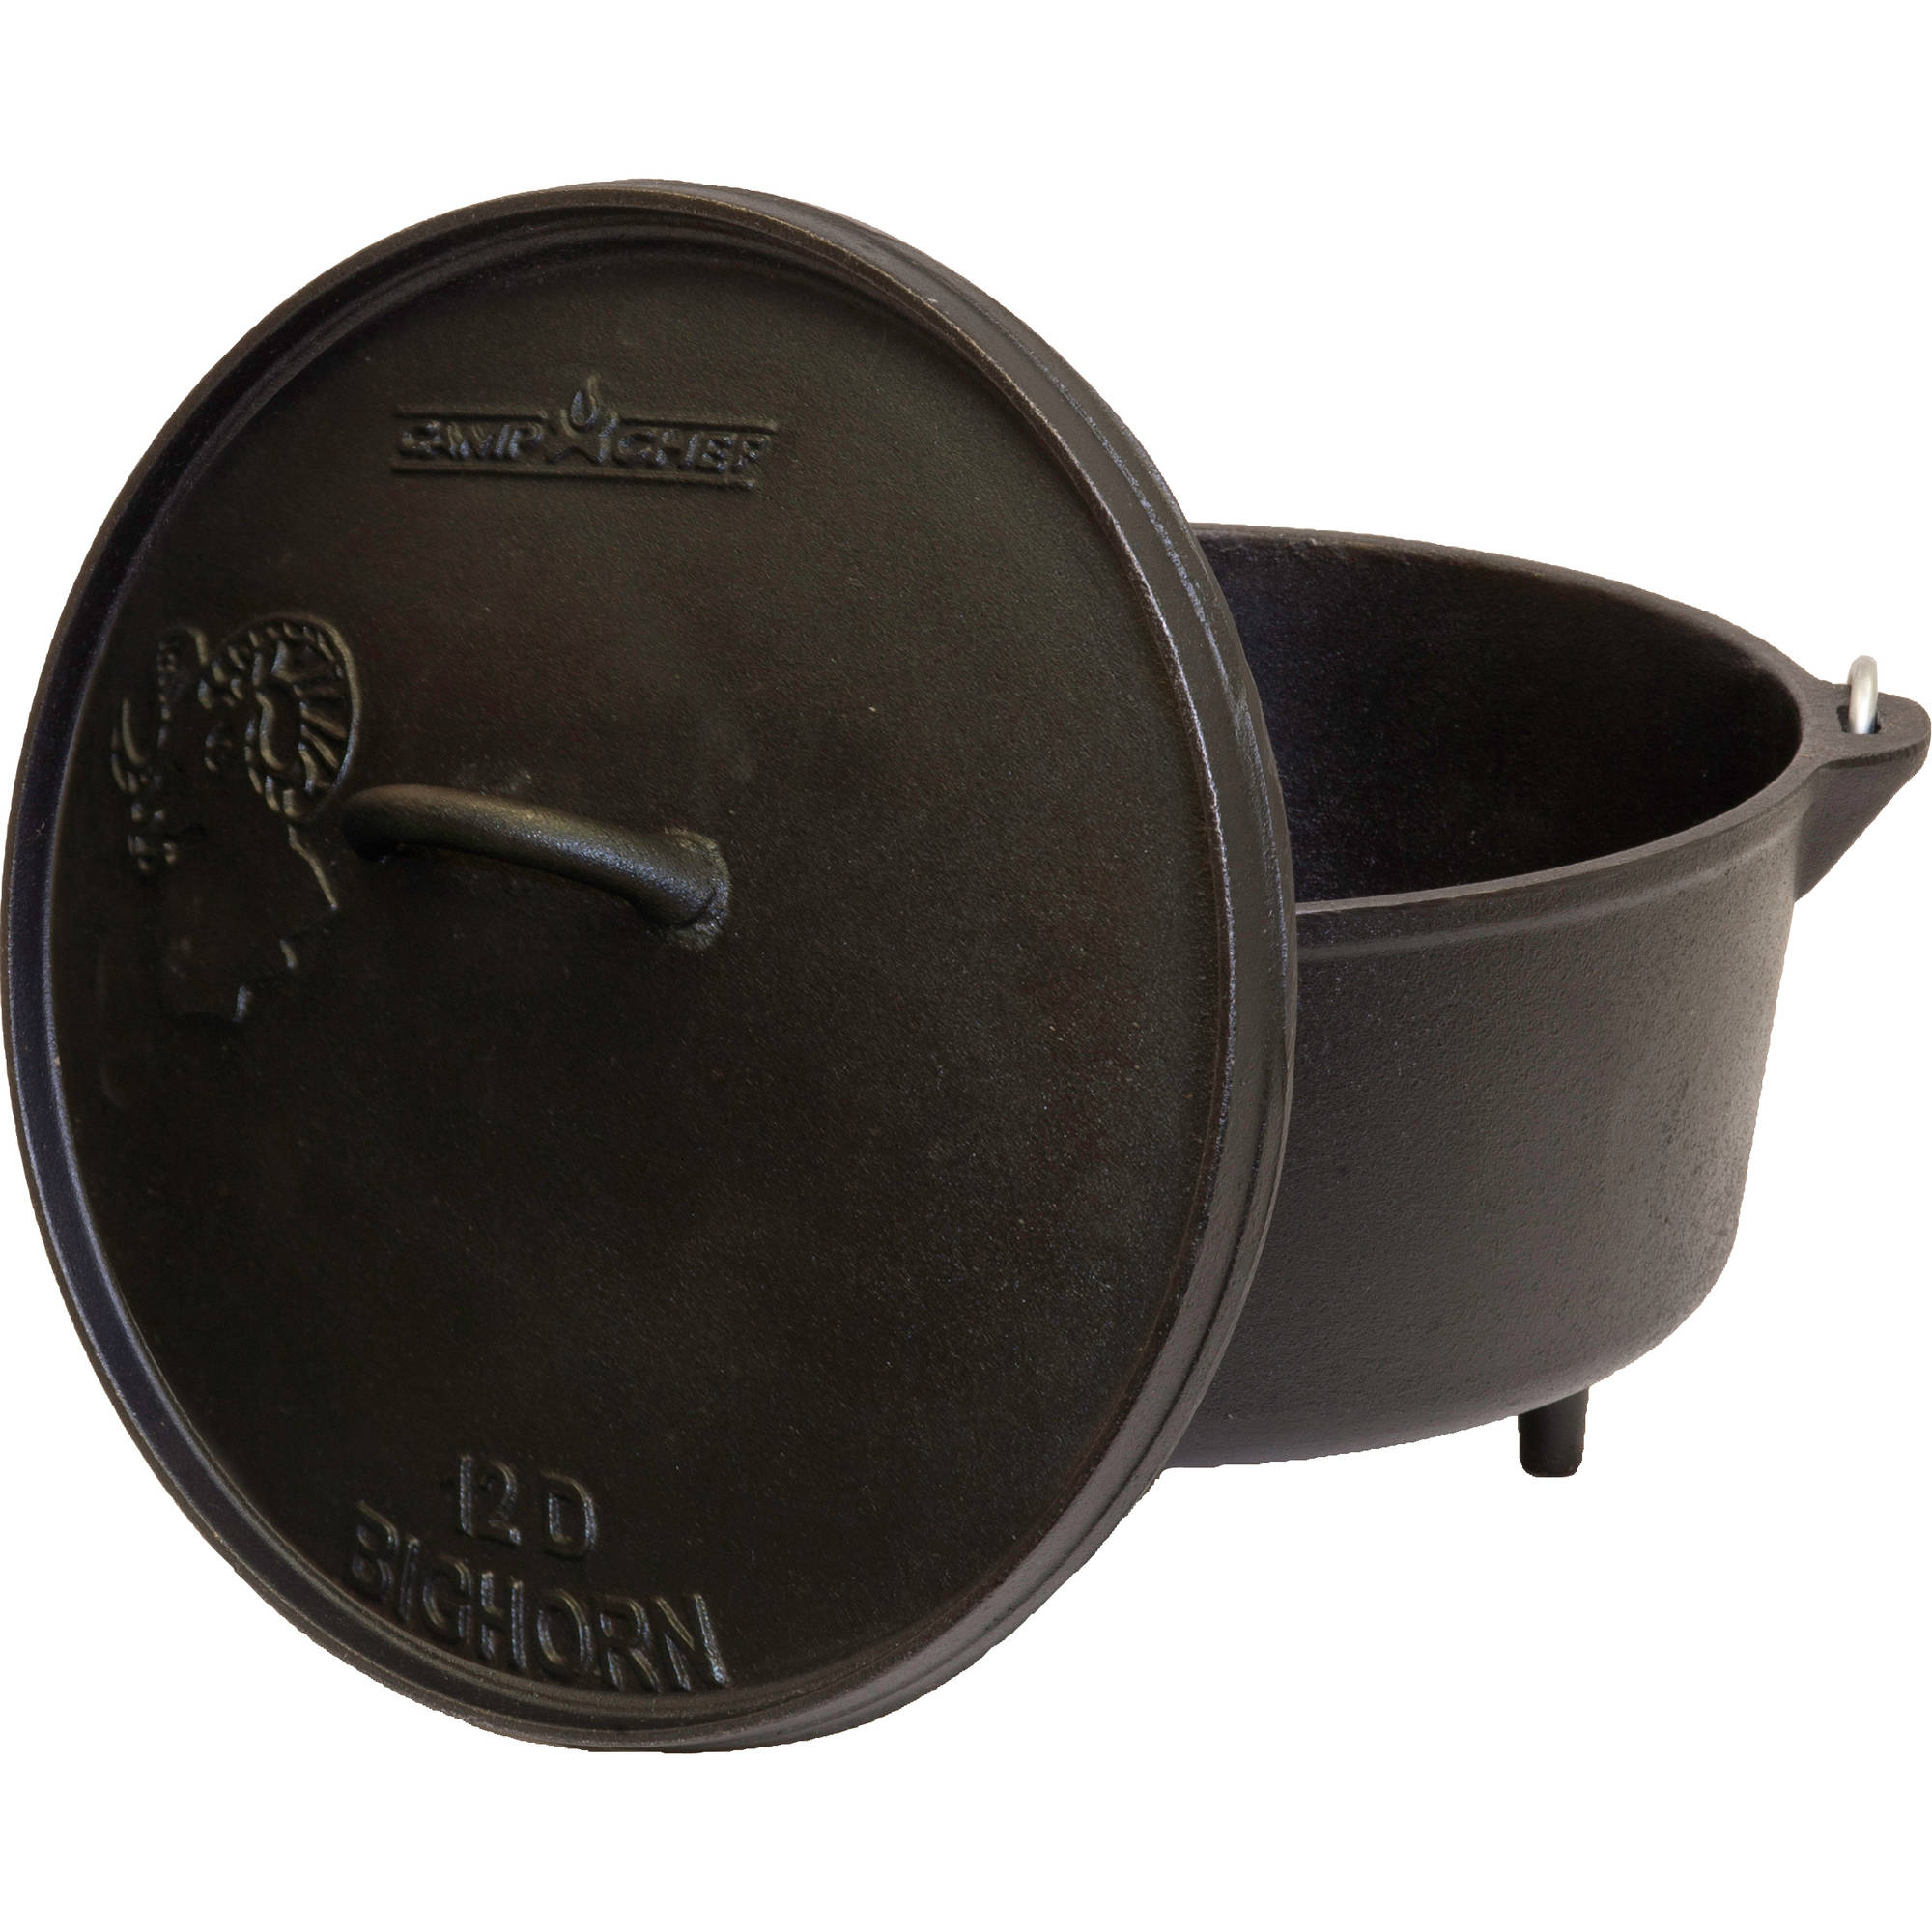 "Camp Chef 12"" Cast Iron Deep Dutch Oven with True Seasoned Finish"